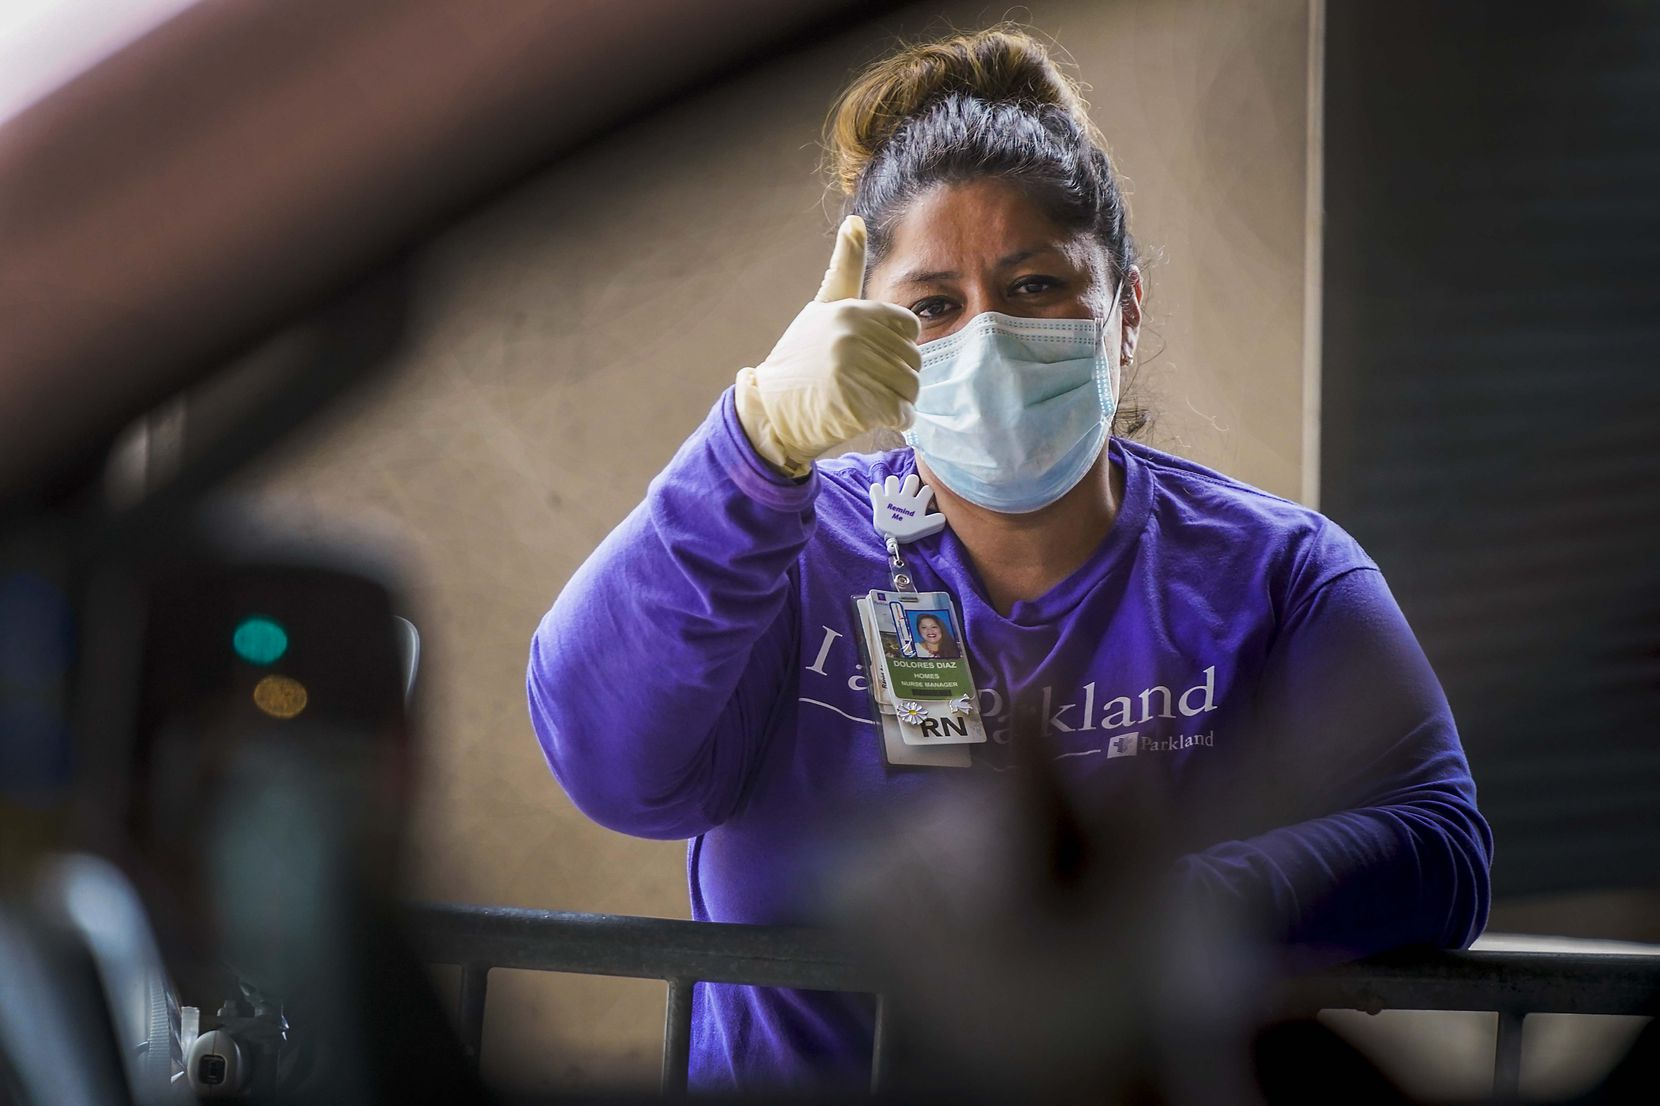 Dolores Diaz, Parkland Homeless Outreach Medical Services (HOMES) program nurse manager, gives a thumbs up to a patient at a COVID-19 drive-through testing site at American Airlines Center on April 20, 2020.